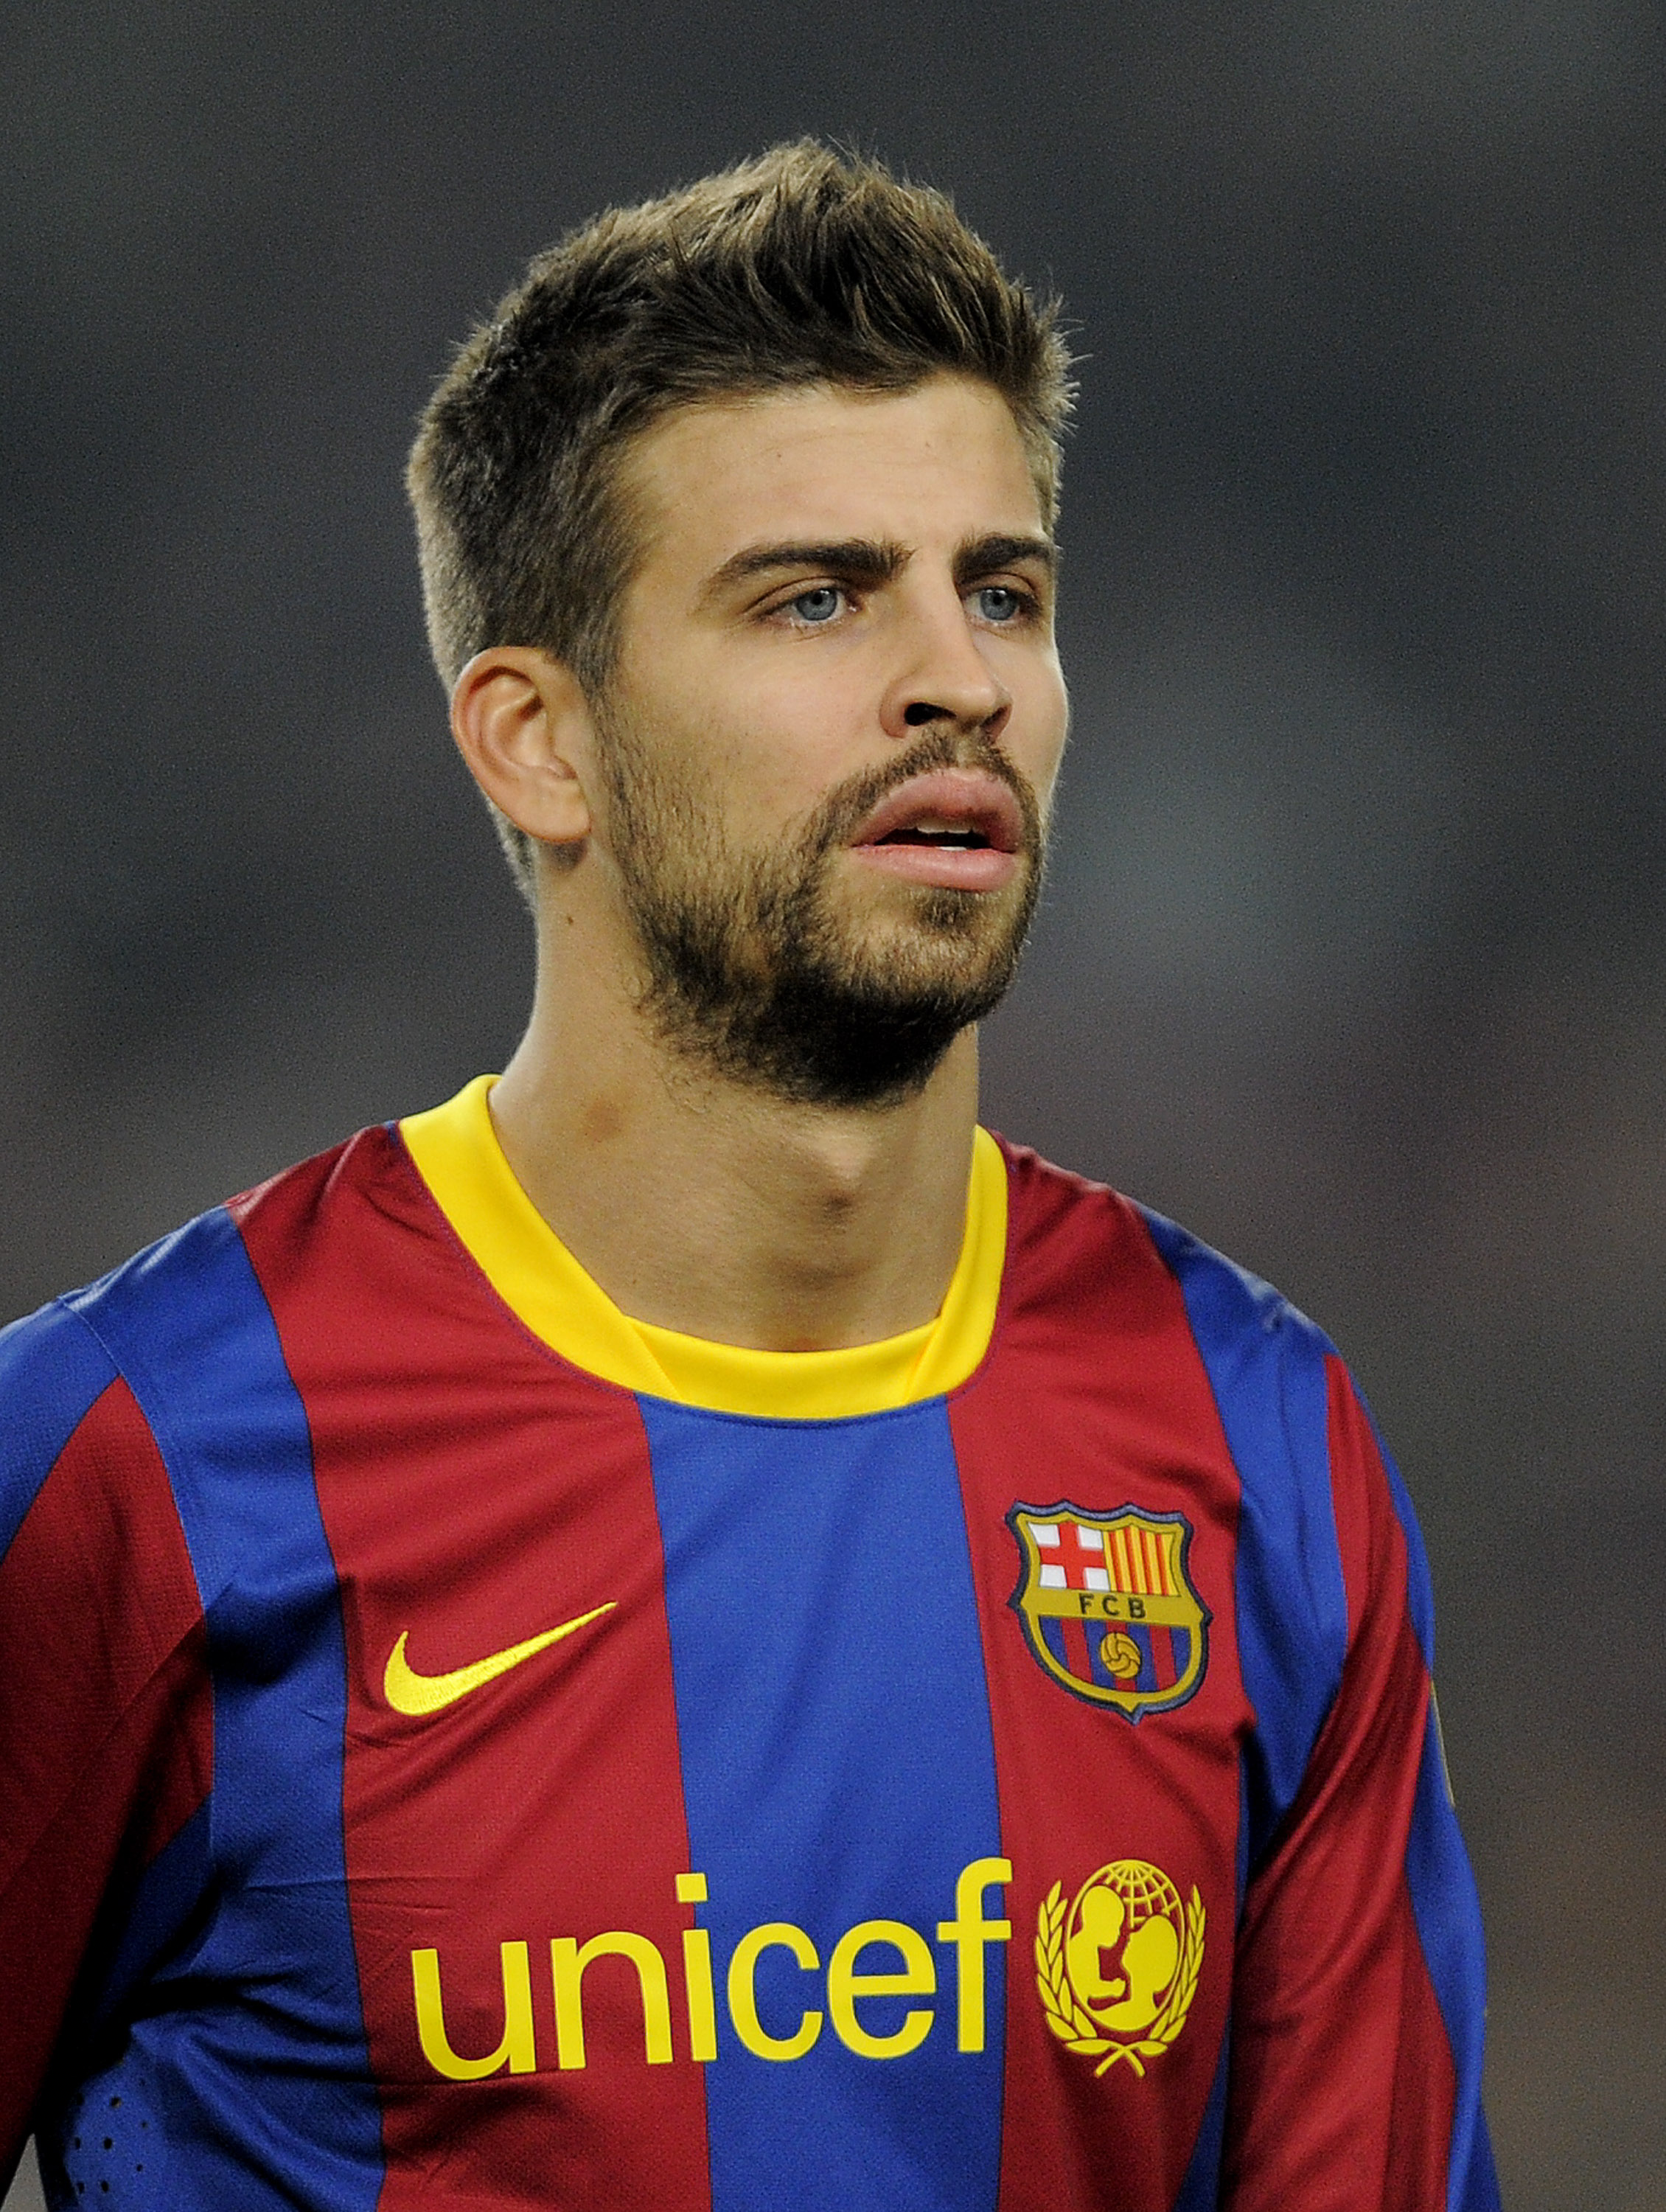 Gerard Pique photo gallery high quality pics of Gerard Pique